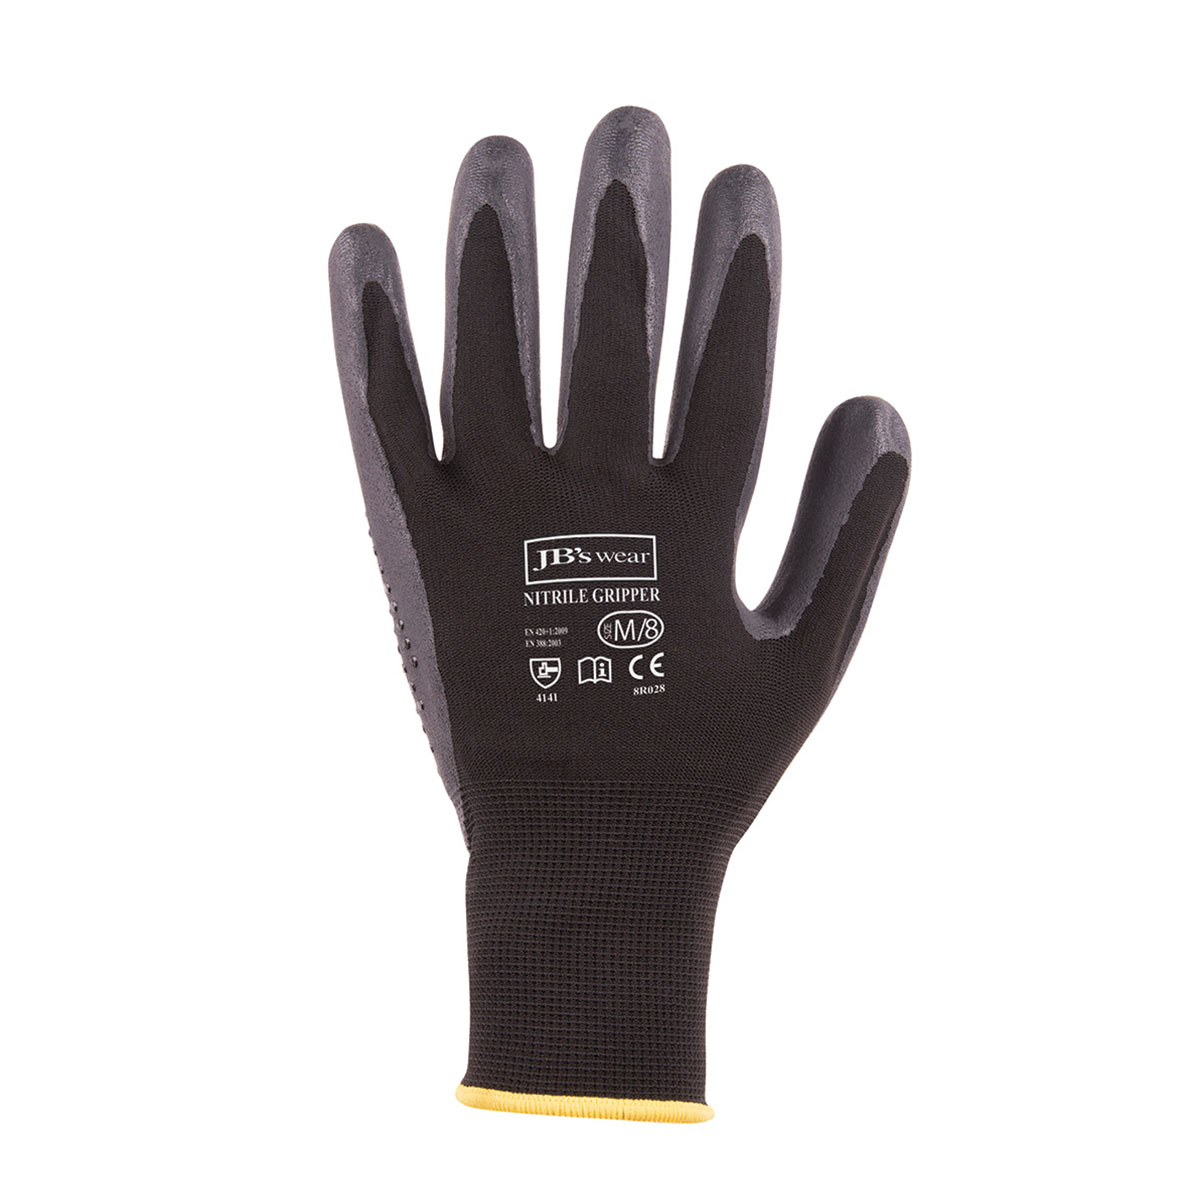 Nitrile Gripper Glove Black